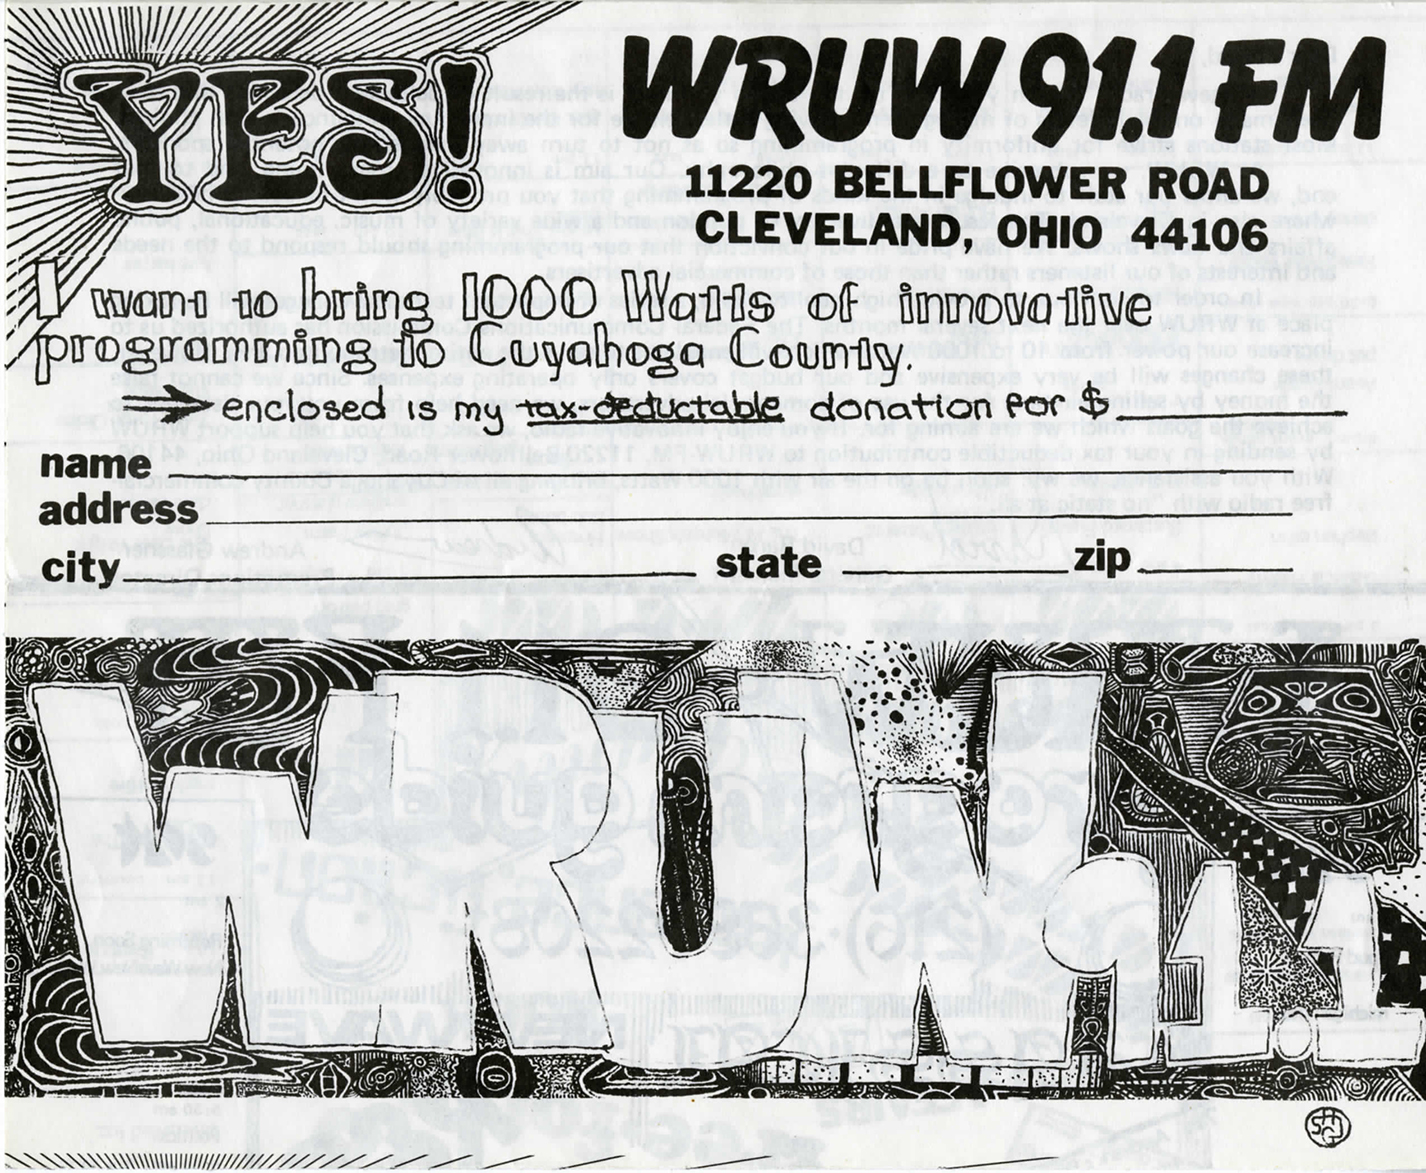 A black and white WRUW fund raising postcard from 1981.